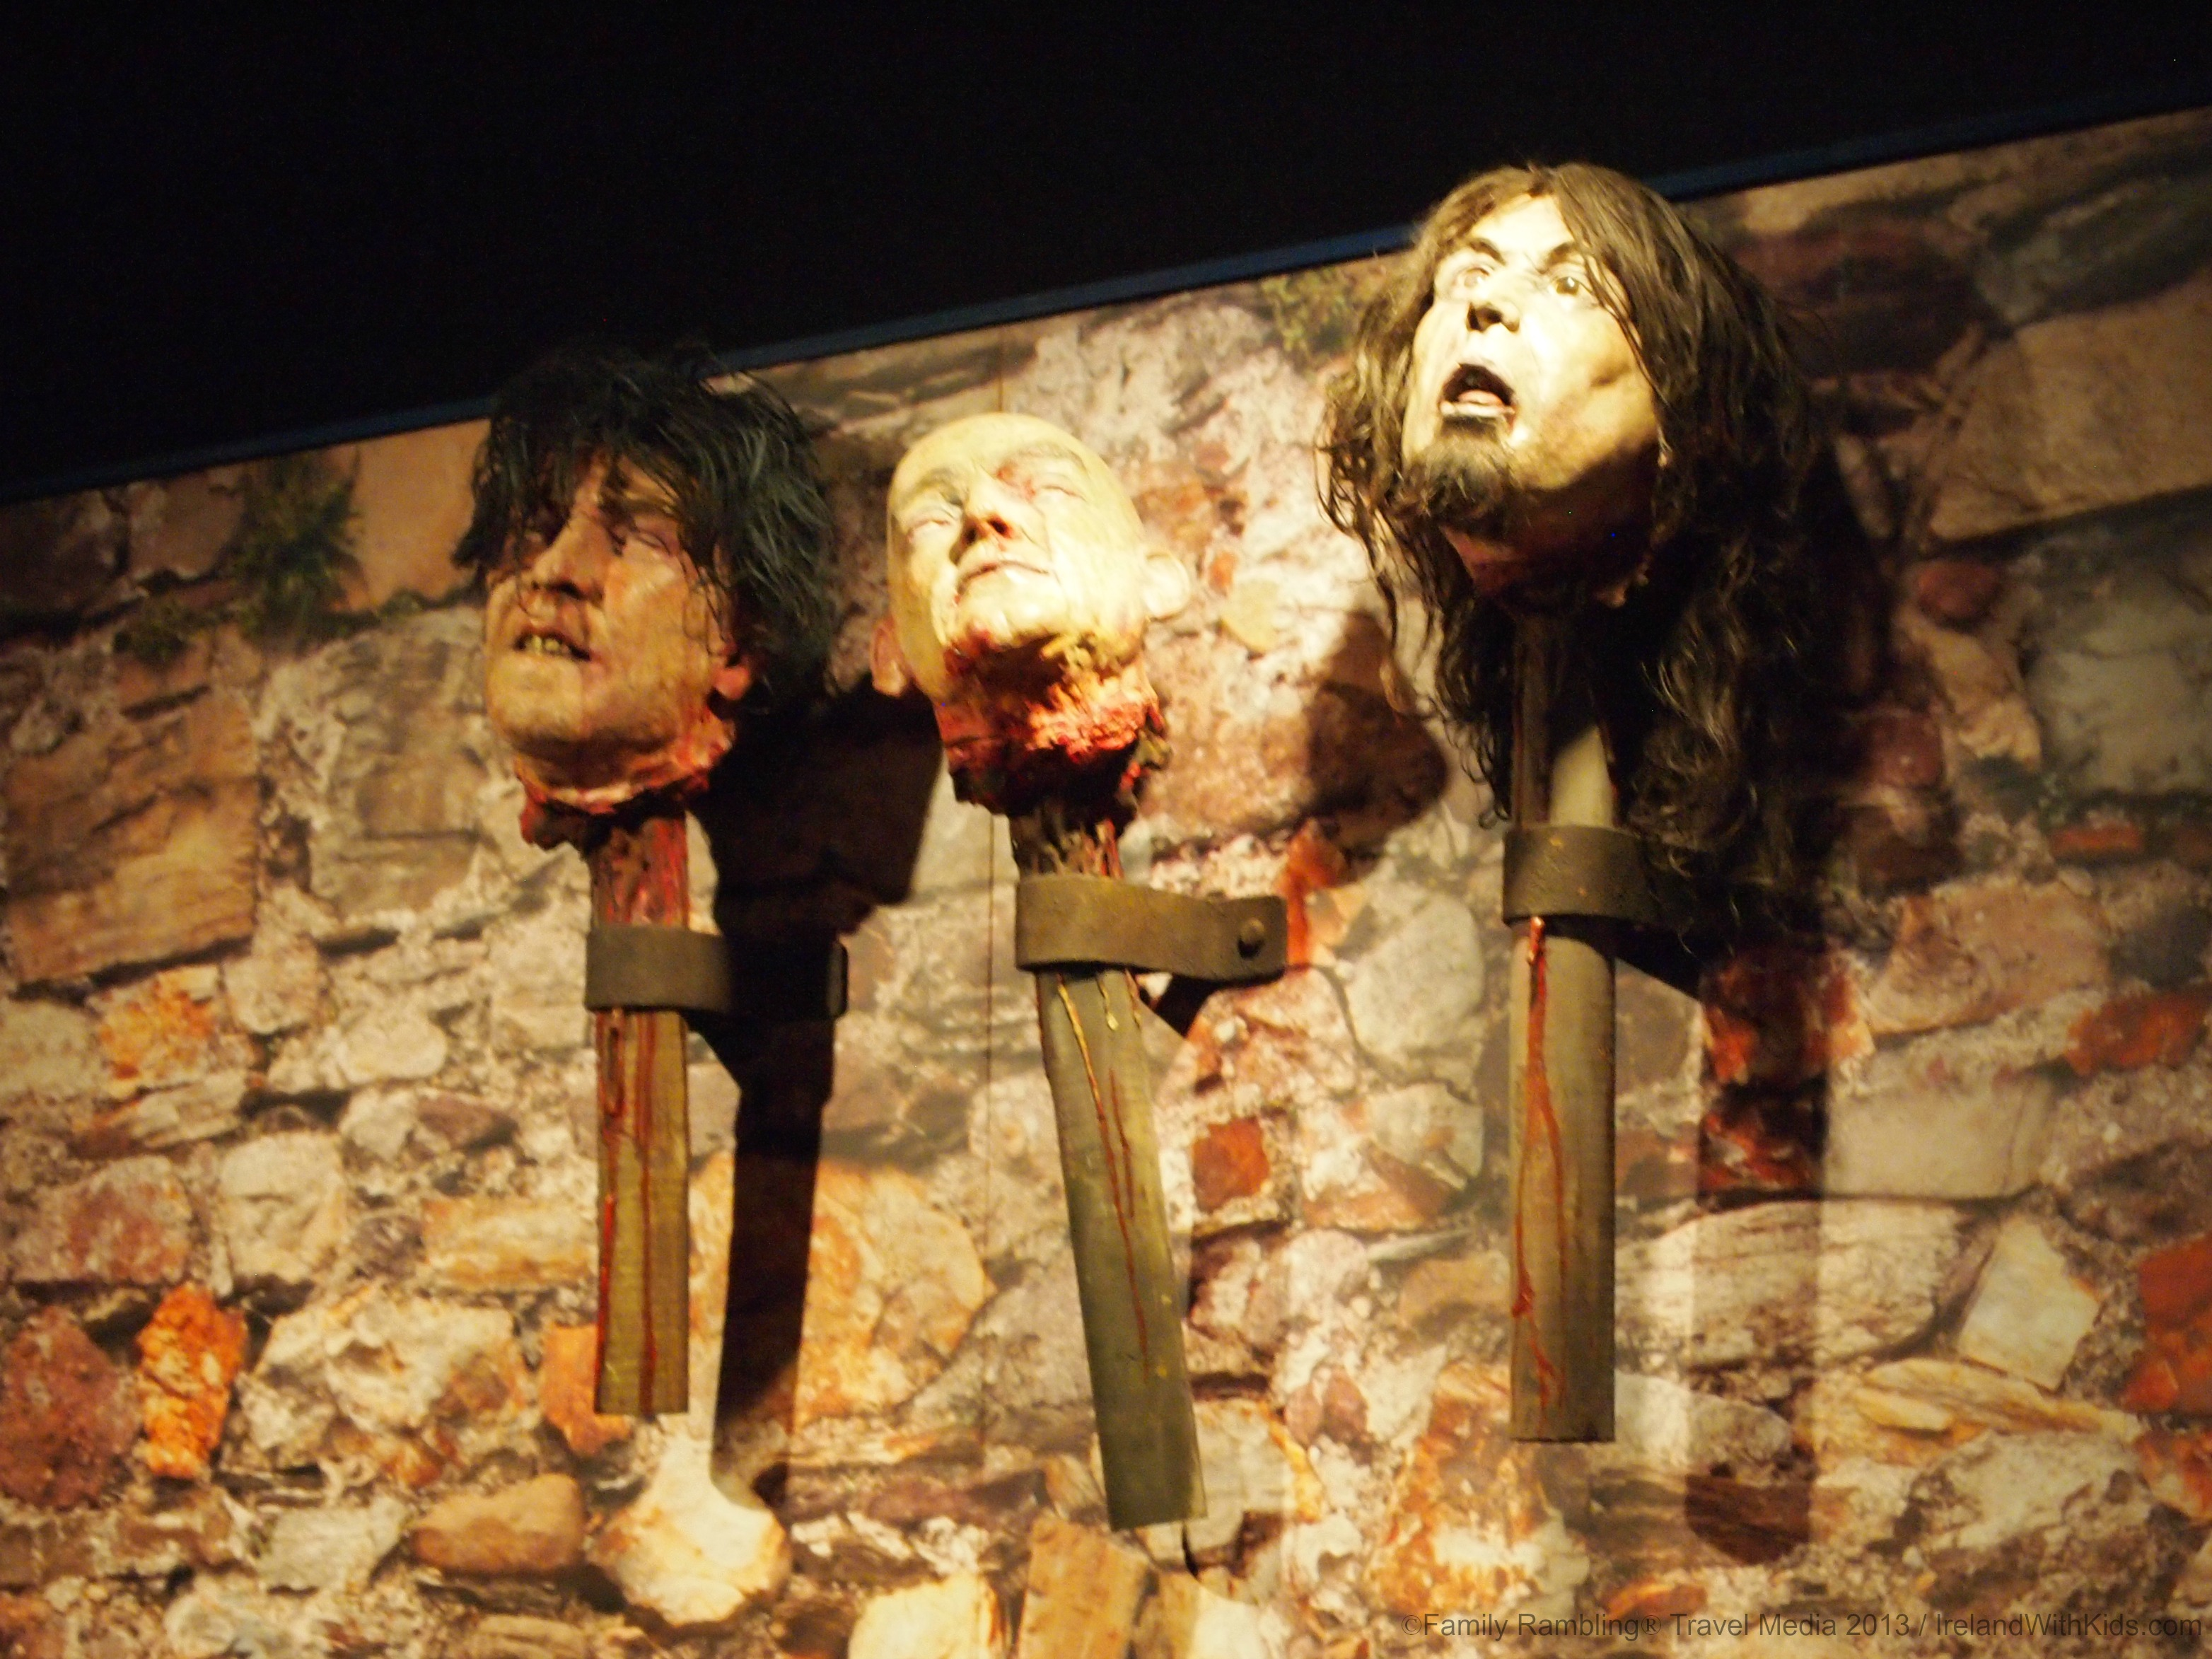 Heads om Pikes at Medieval Museum, Waterford